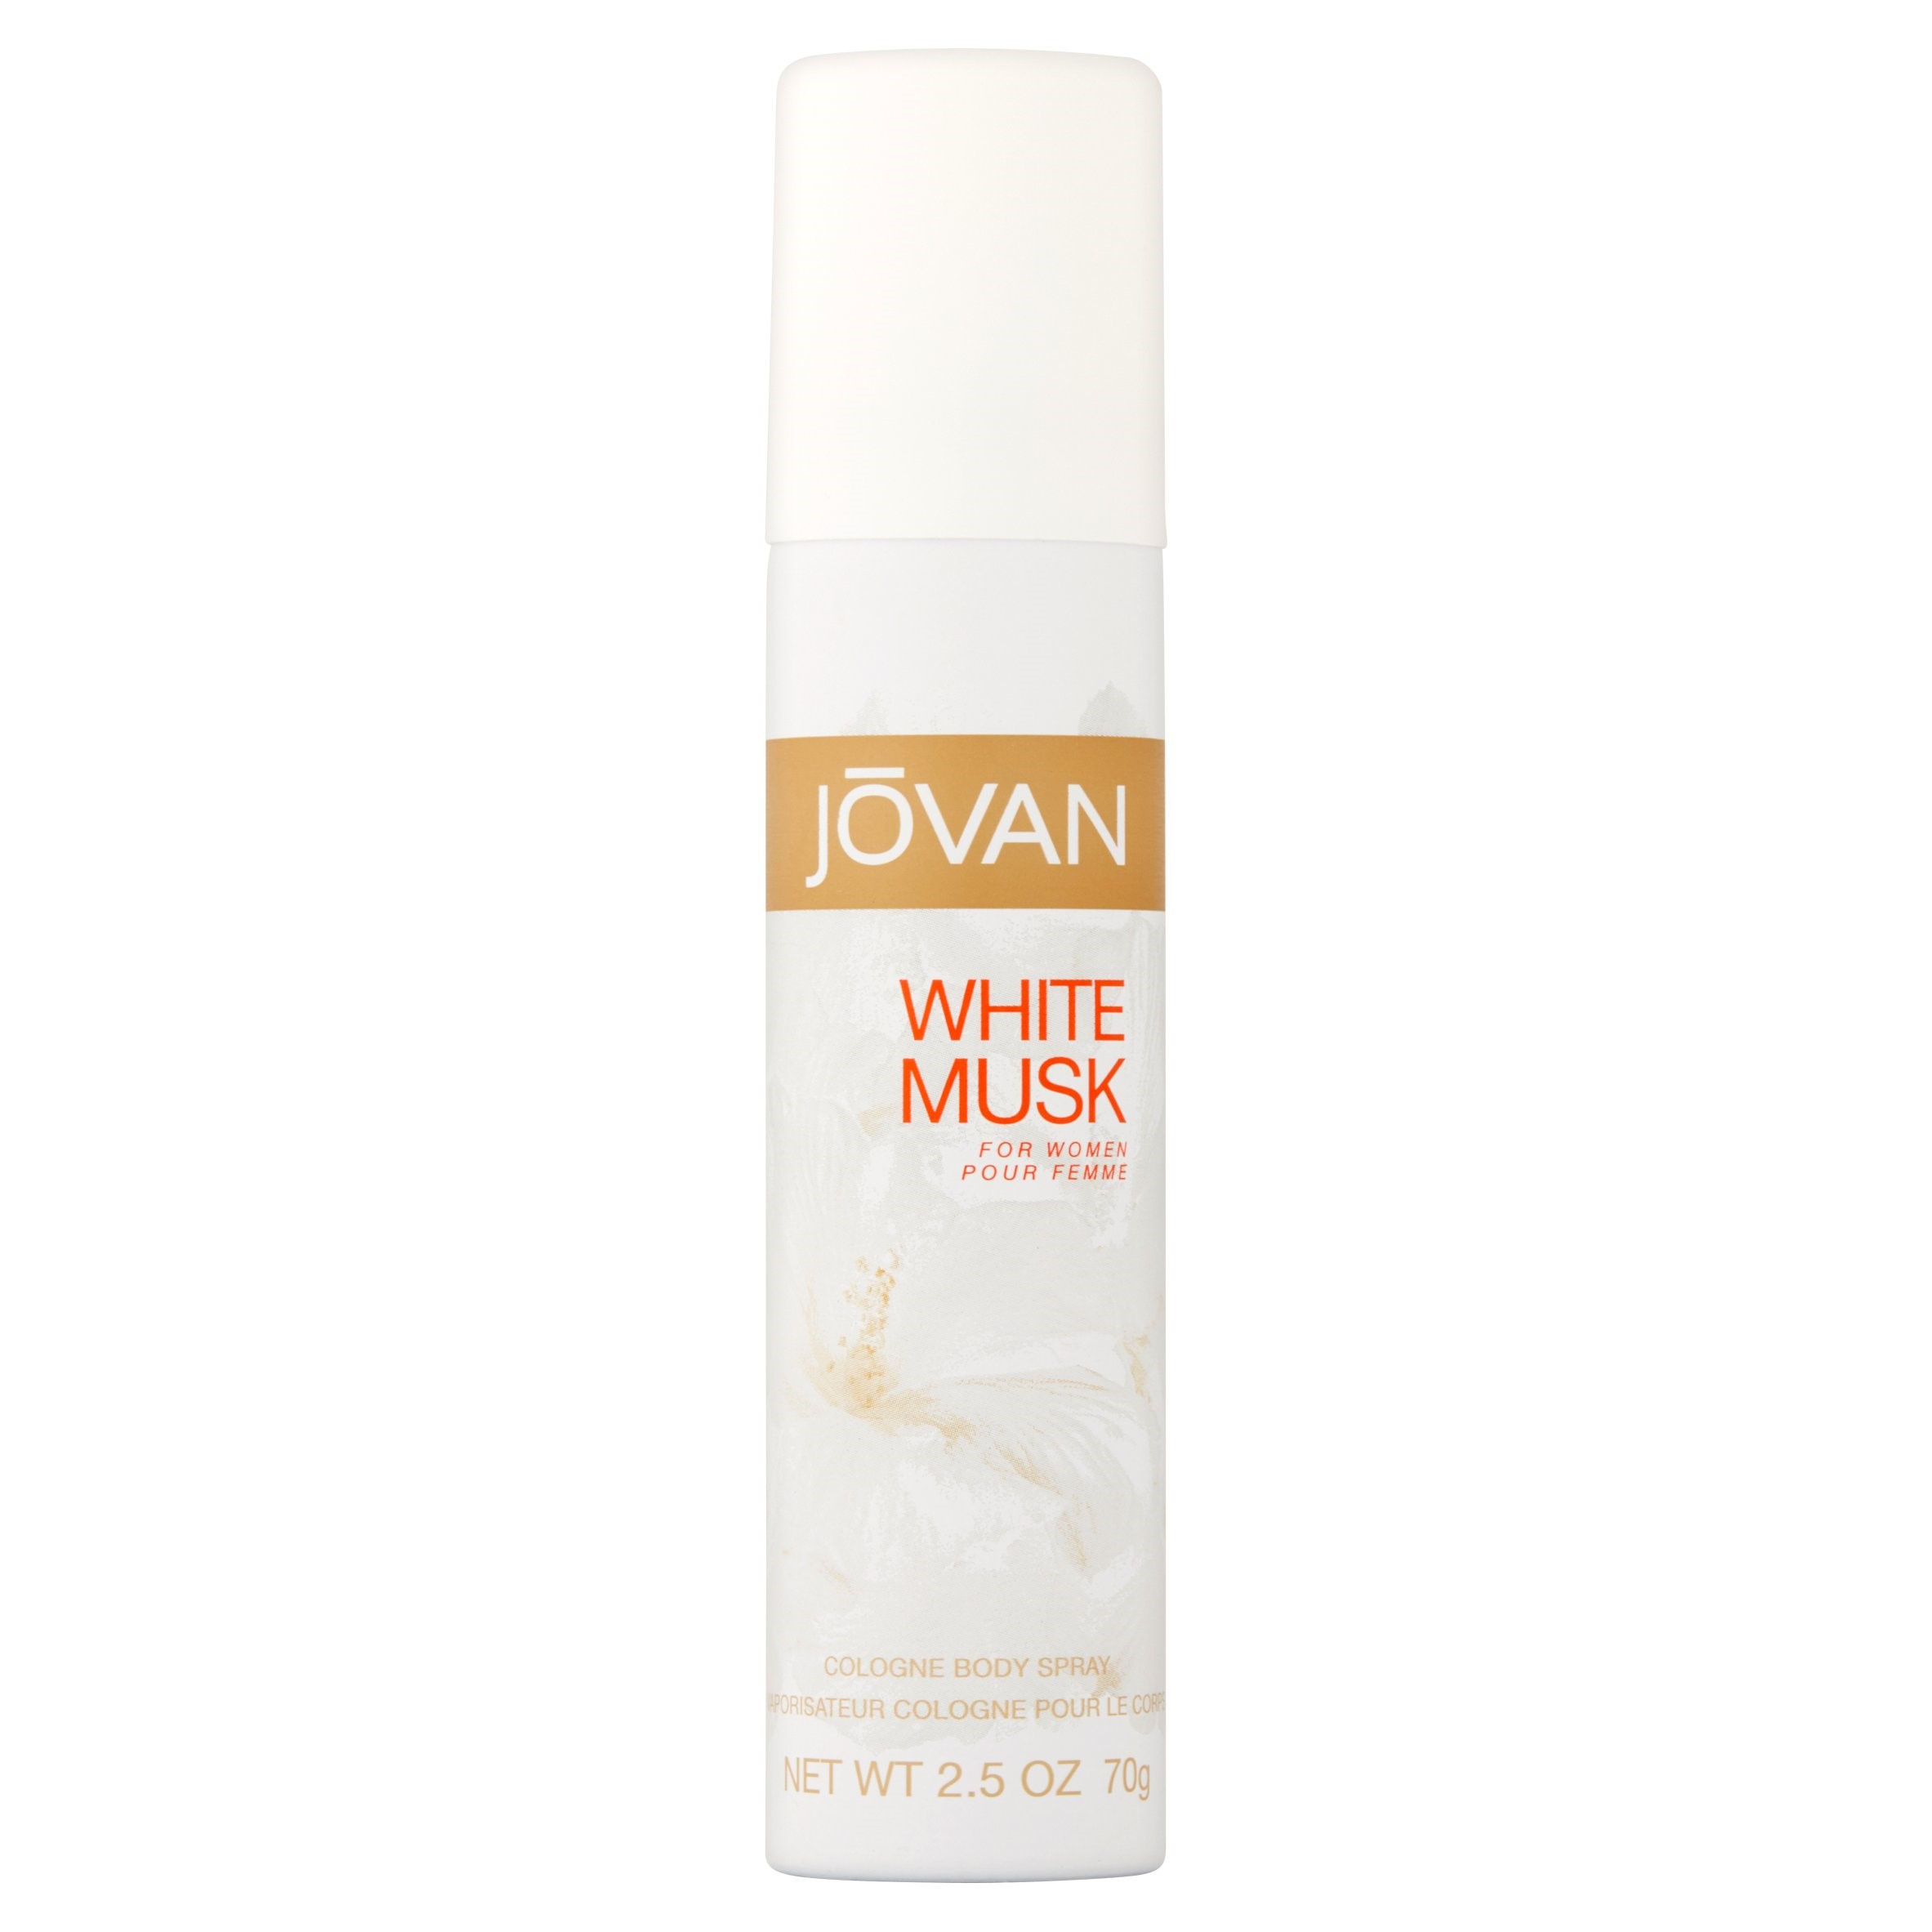 Jovan White Musk for Women Cologne Body Spray, 2.5 oz